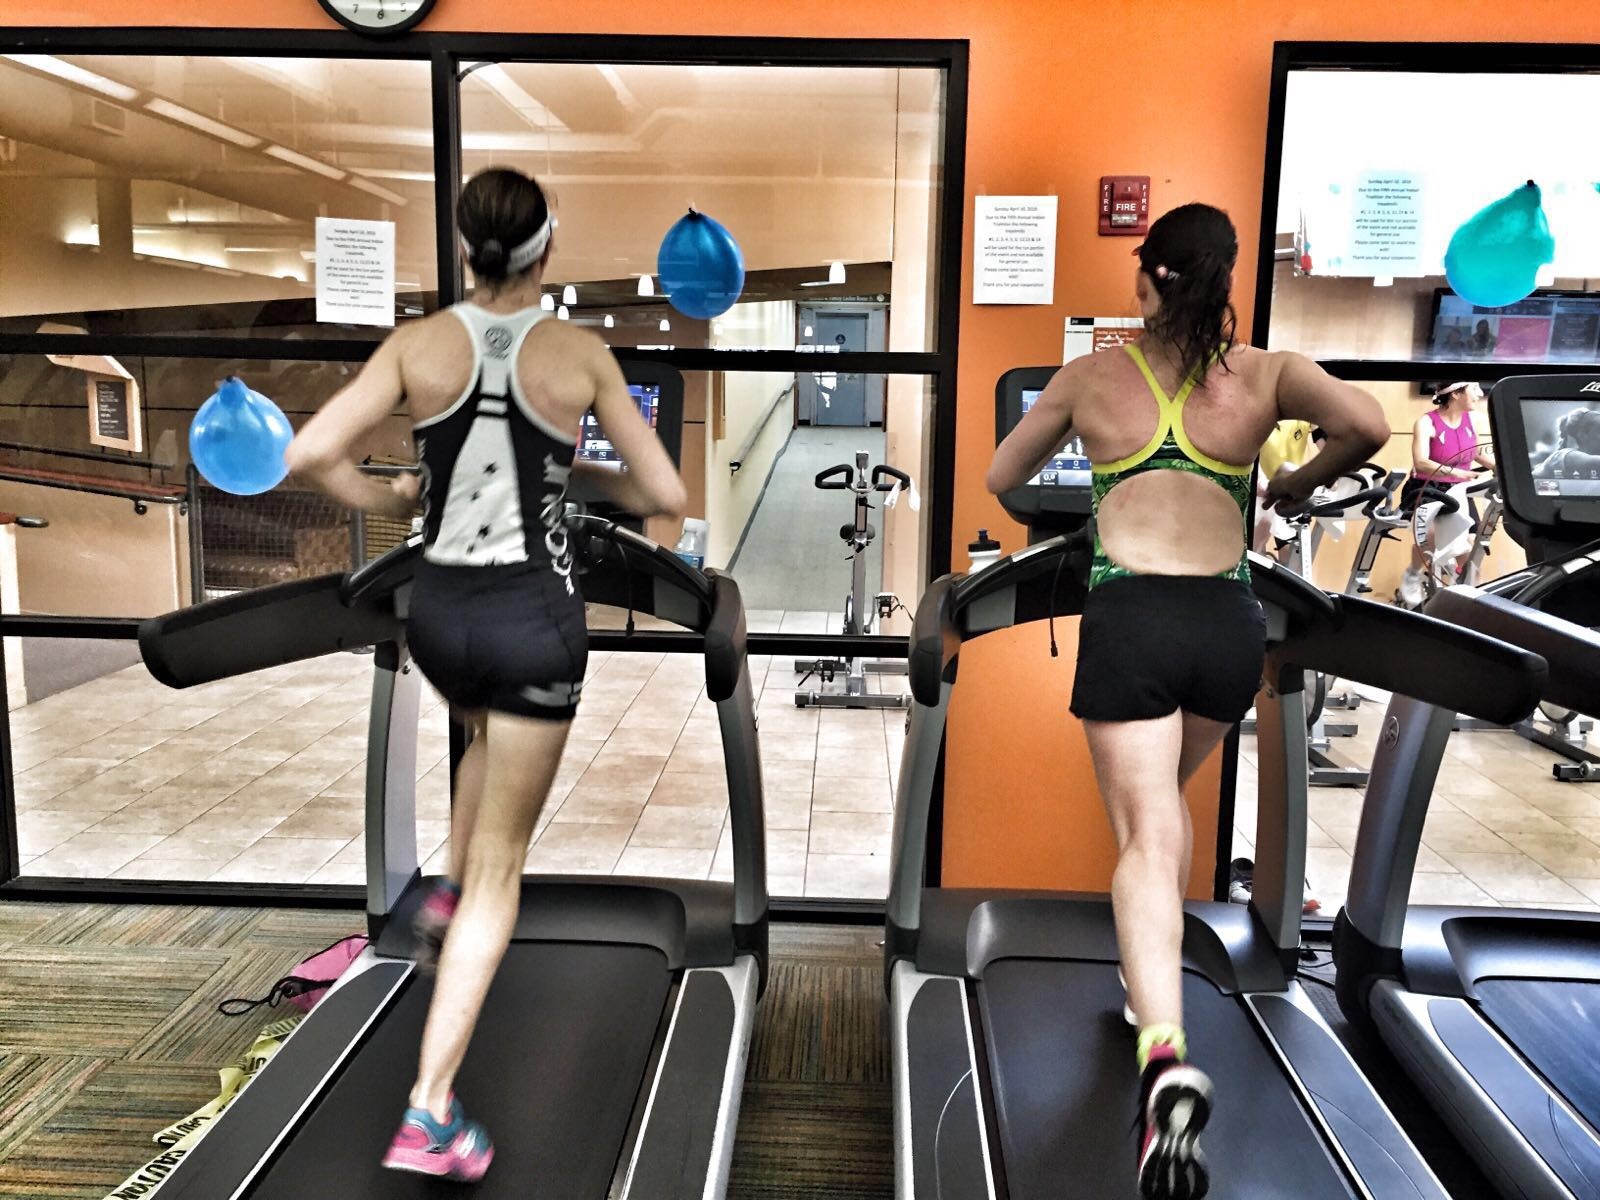 Sister Duel on the Treadmill. Loving my Sugoi shorts/bathing suit combo!